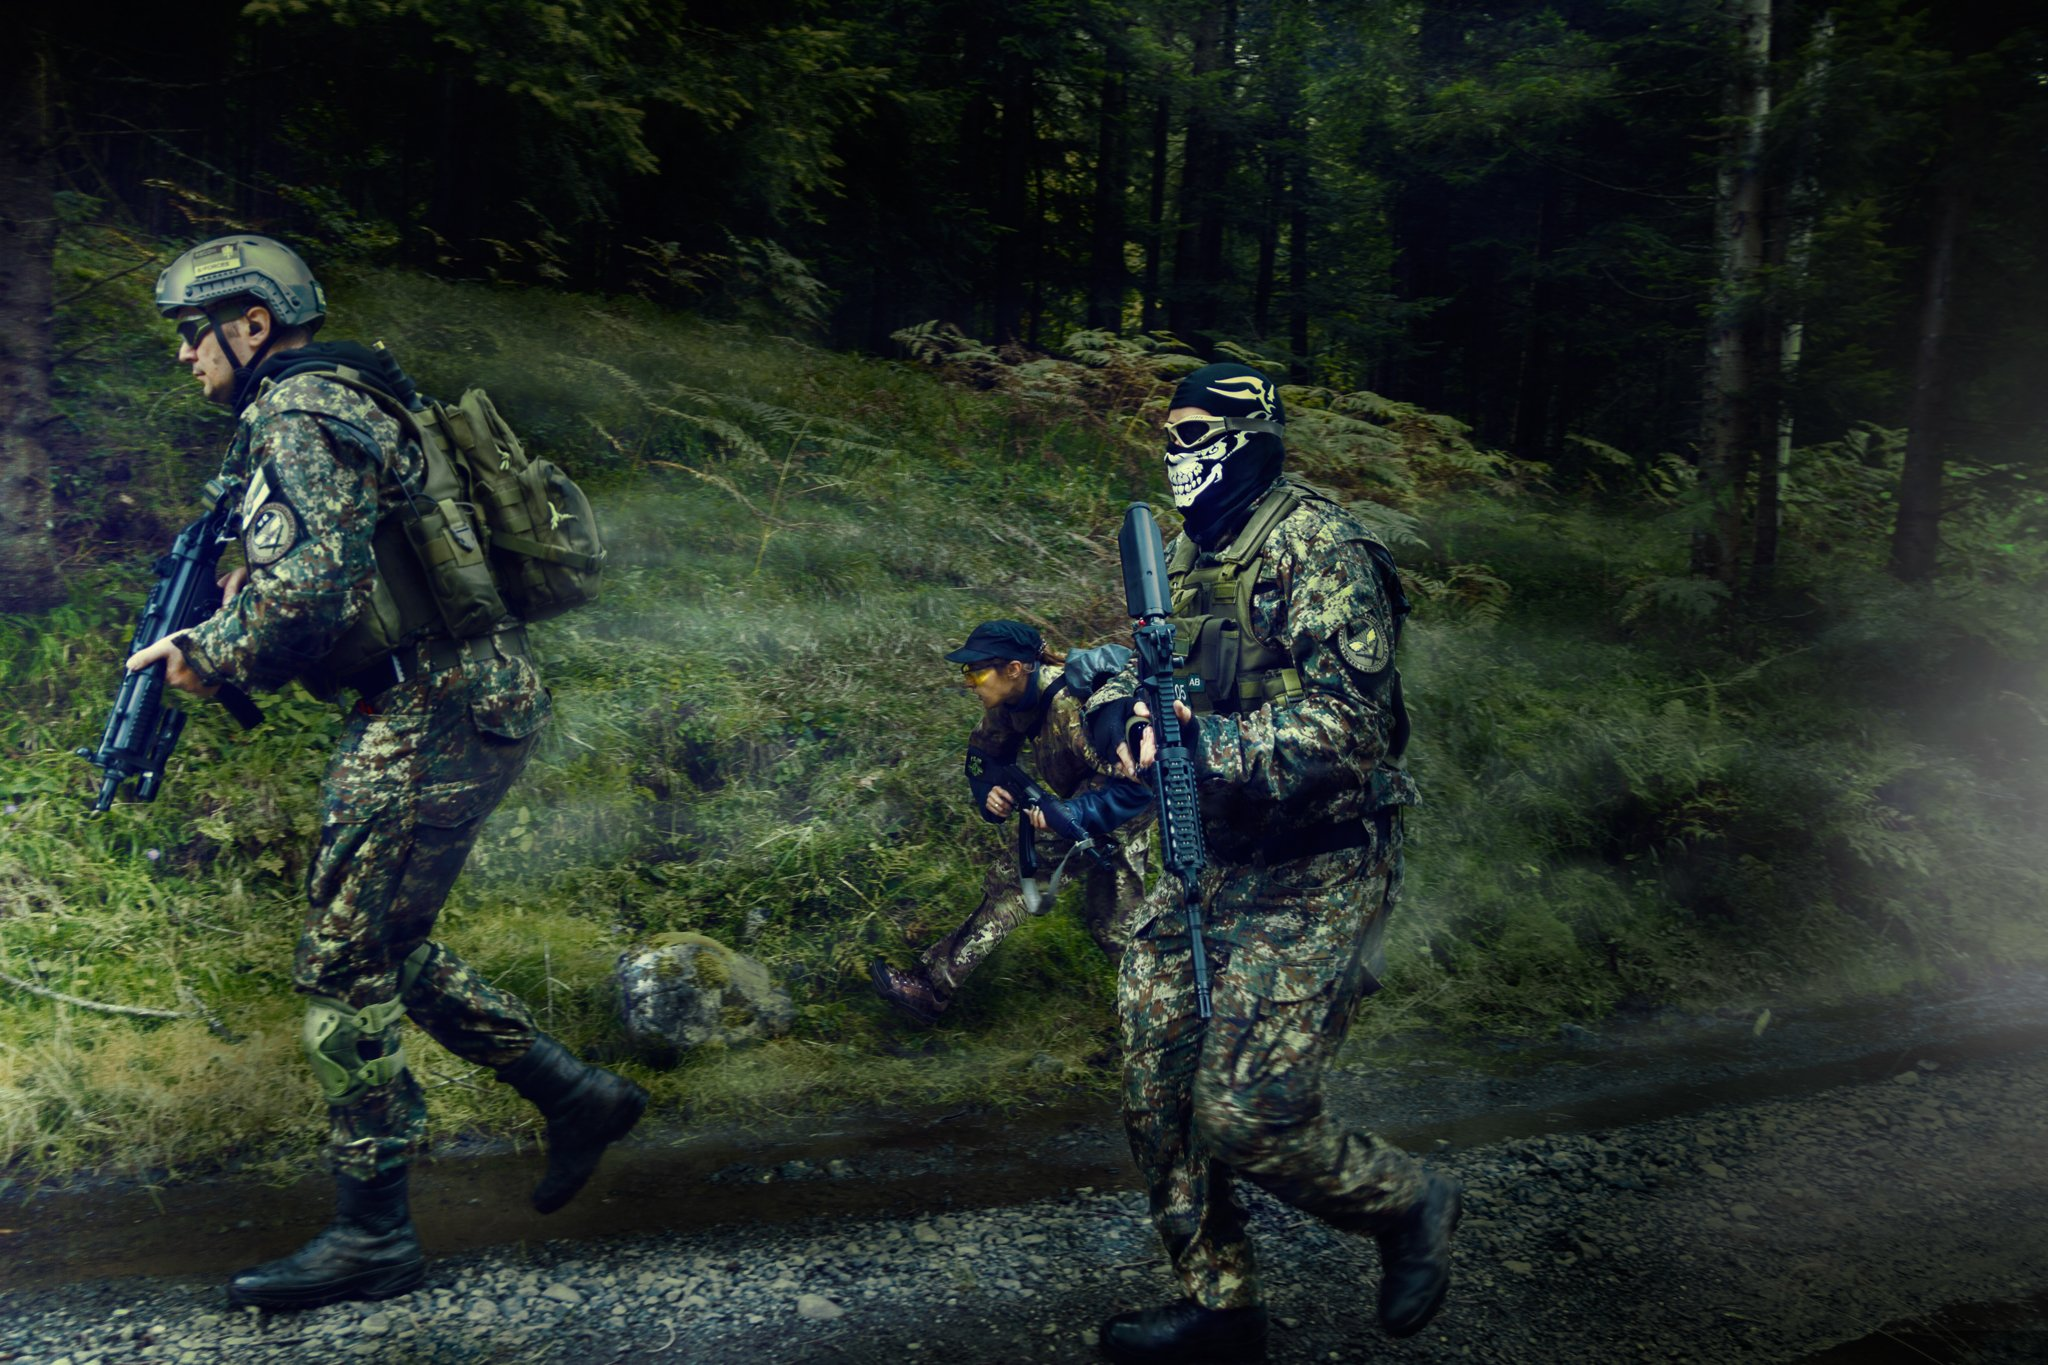 airsoft, game, escape, uniform, sport, forest, gun, competition, serbia, run, action, adrenaline, under fire, soldiers, camo, camouflage, escape plan, enemy, uncovered, exposed, protection, protected, guards, weapon, stealth, theft, play, hostile,, Марко Радовановић